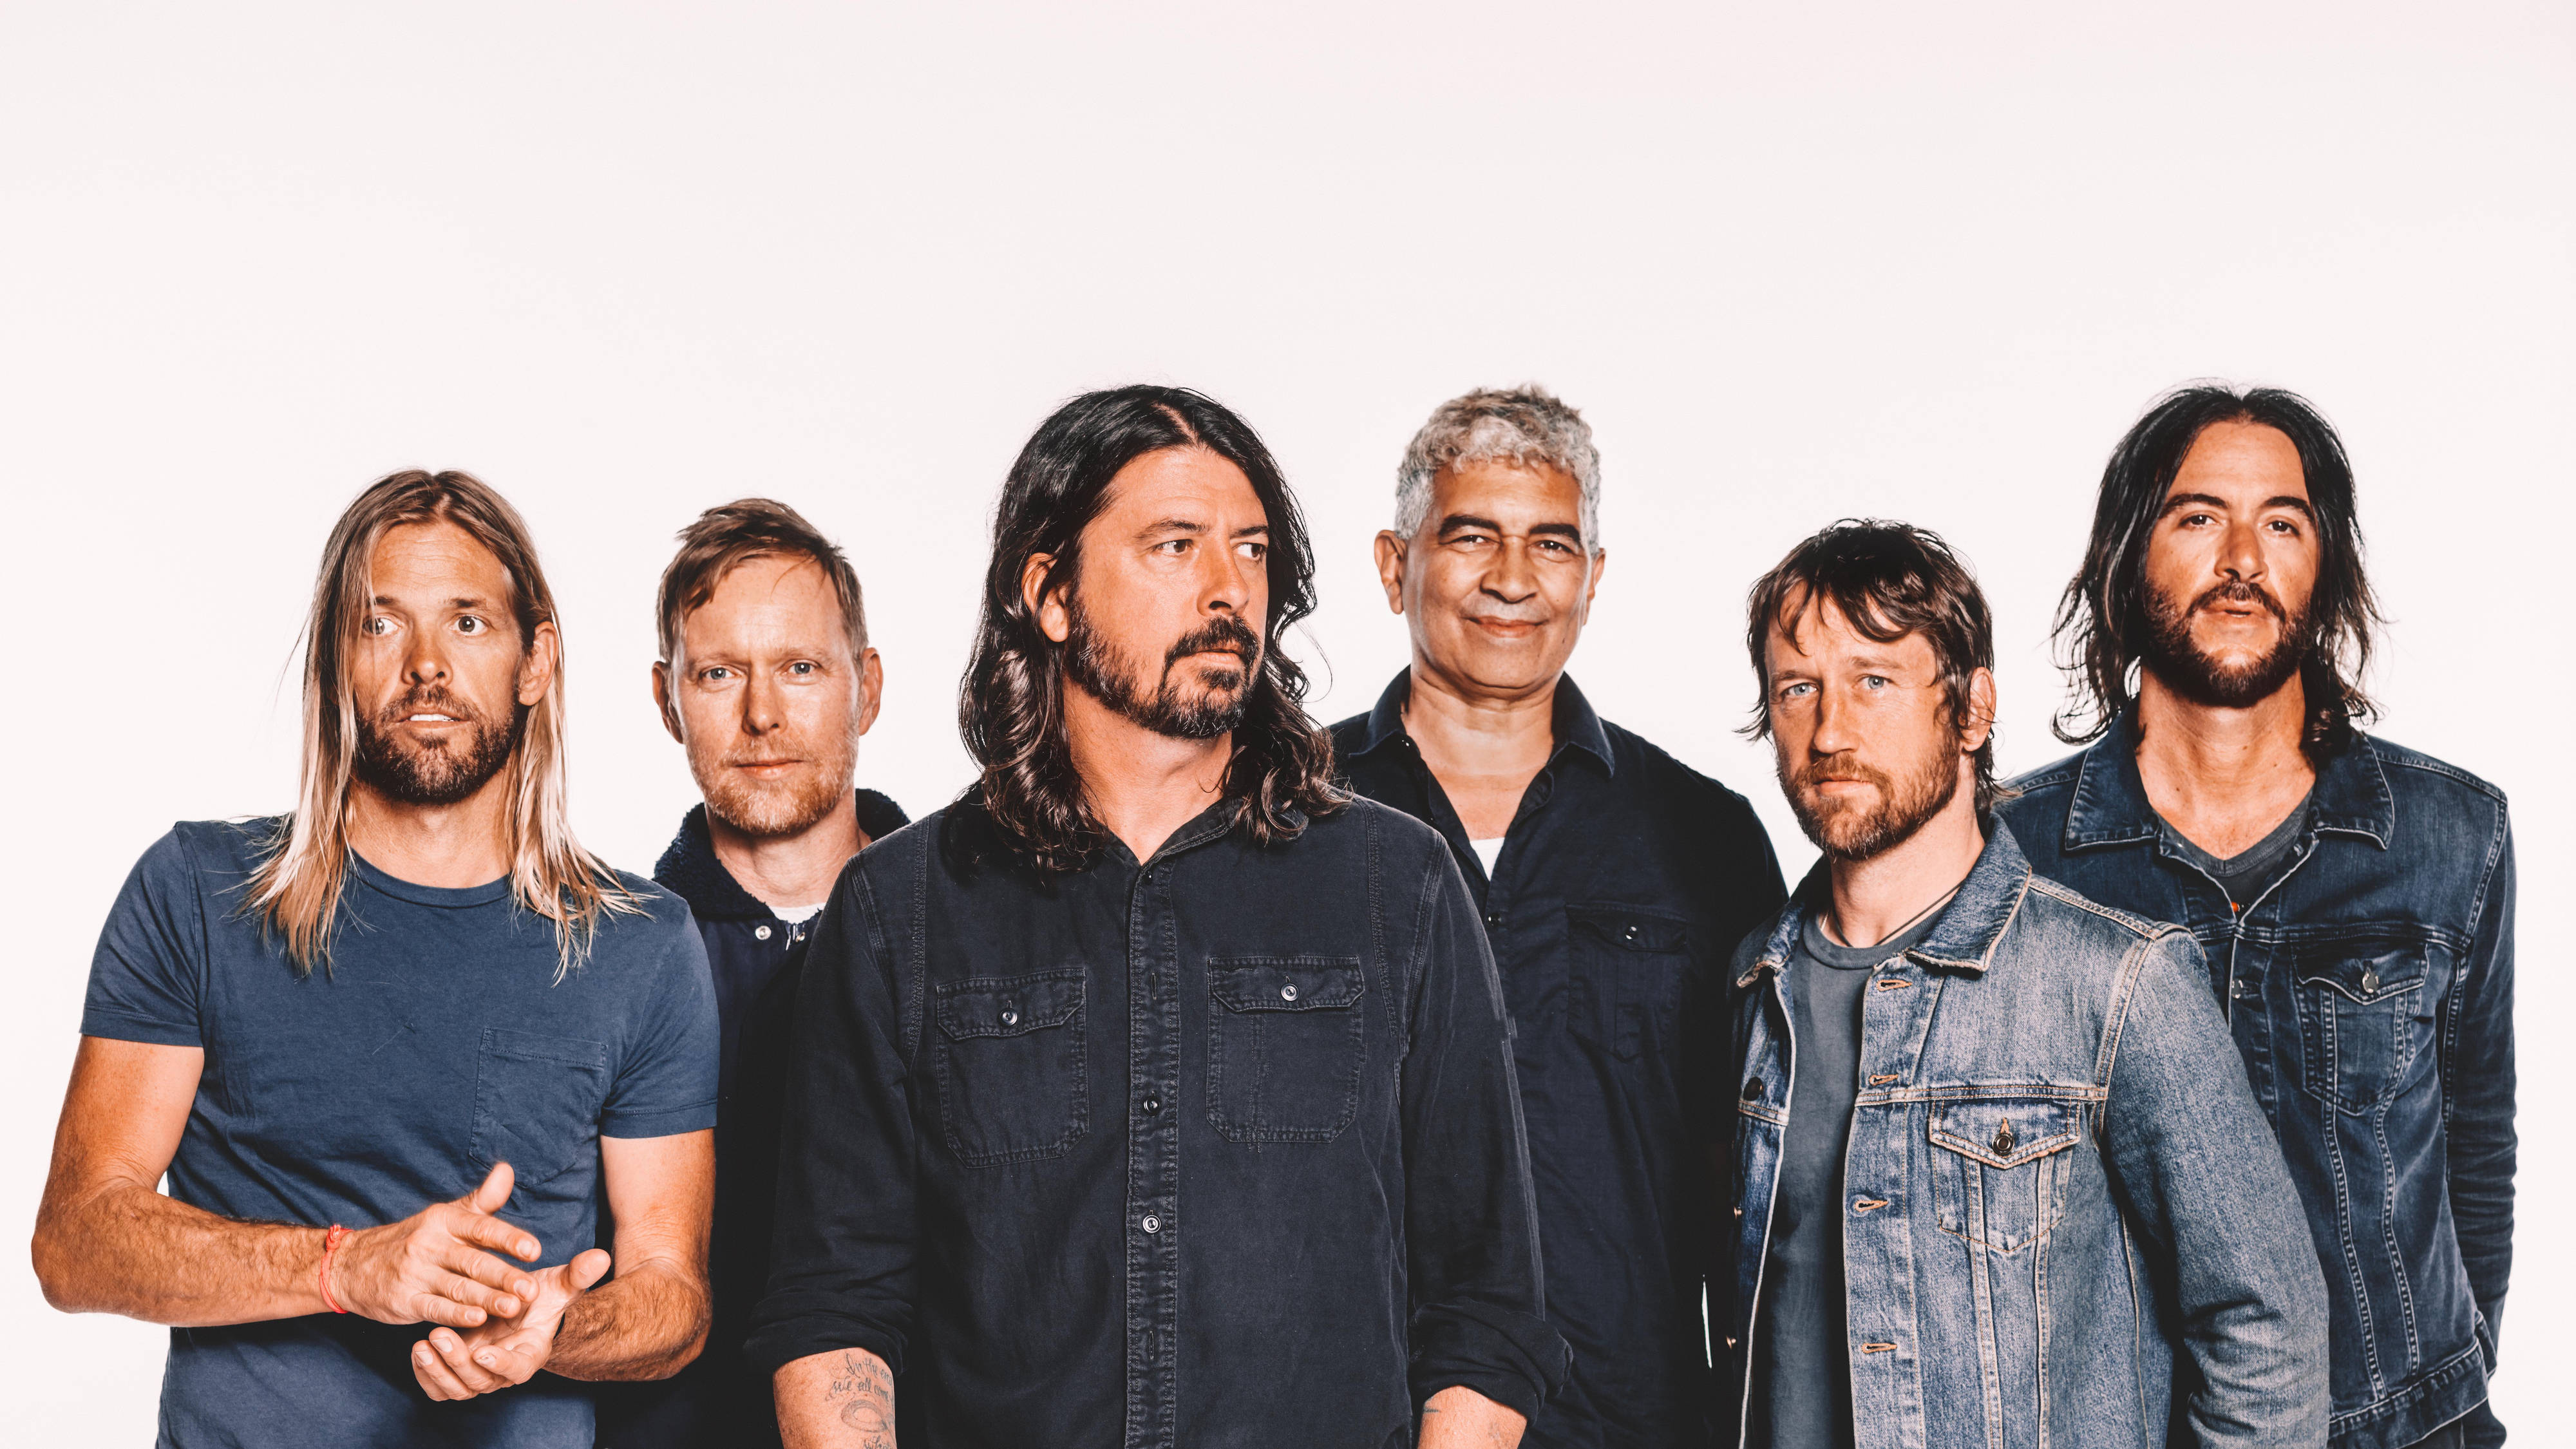 Foo Fighters at Glasgow Summer Sessions: Stage times at Bellahouston Park, support acts & setlist